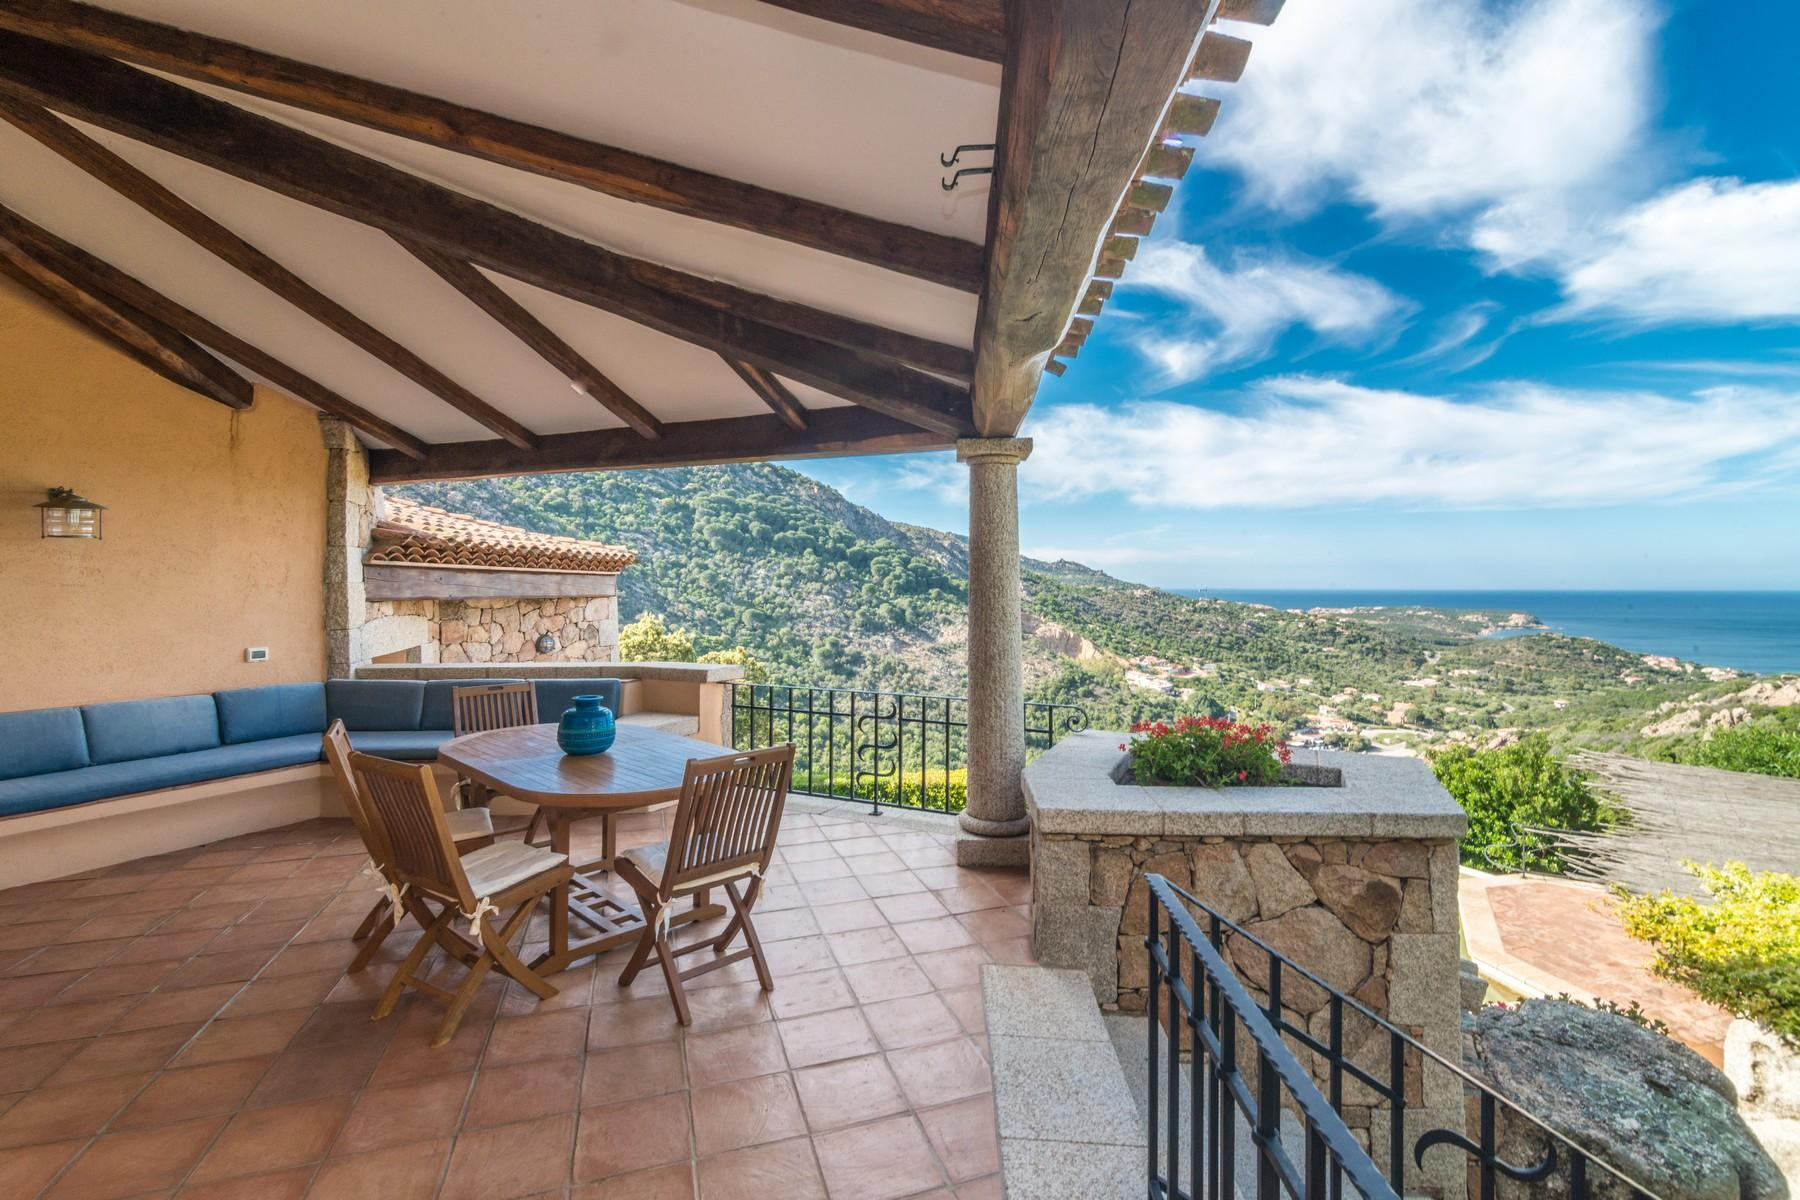 Porto Cervo Abbiadori Beautiful semi-detached villa with sea view - 5